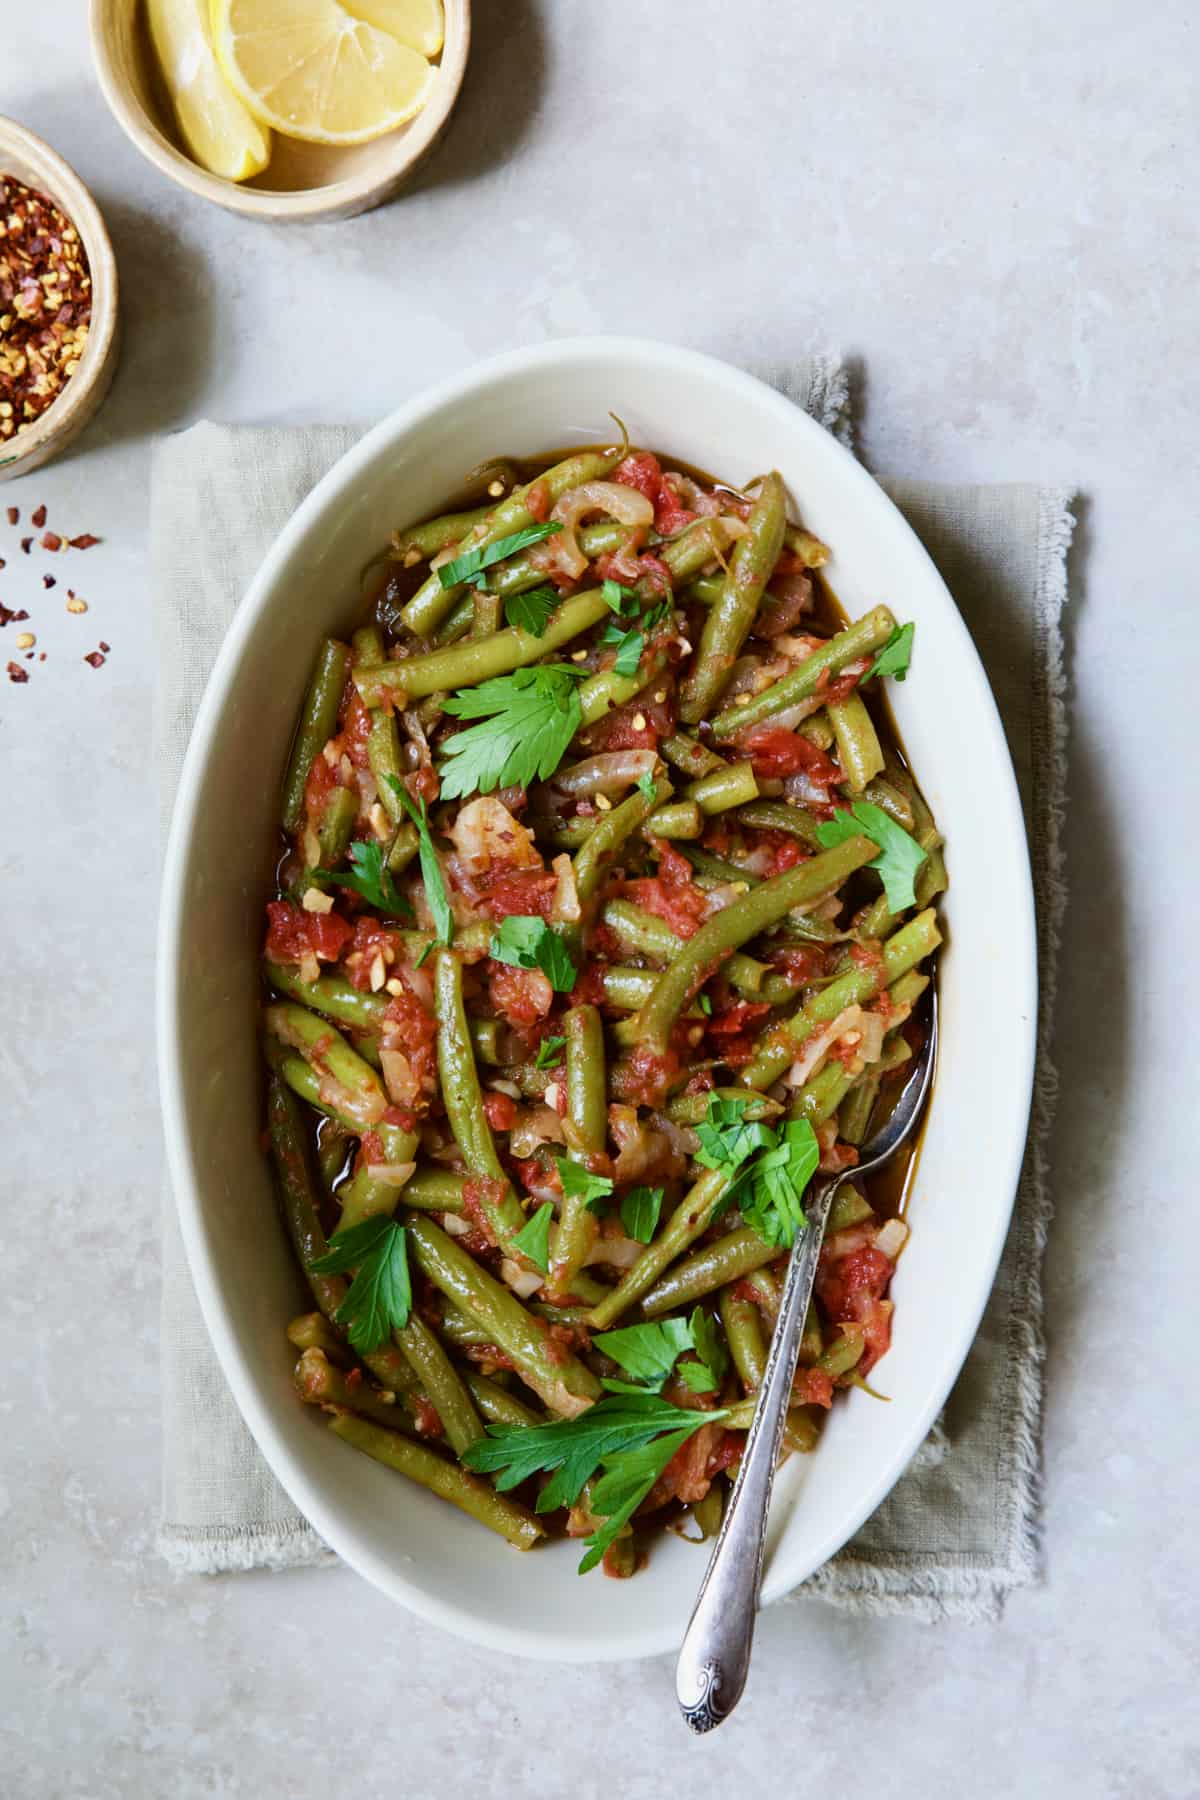 Mediterranean Braised Green Beans with Tomatoes in oval serving dish with serving spoon garnished with fresh parsley.